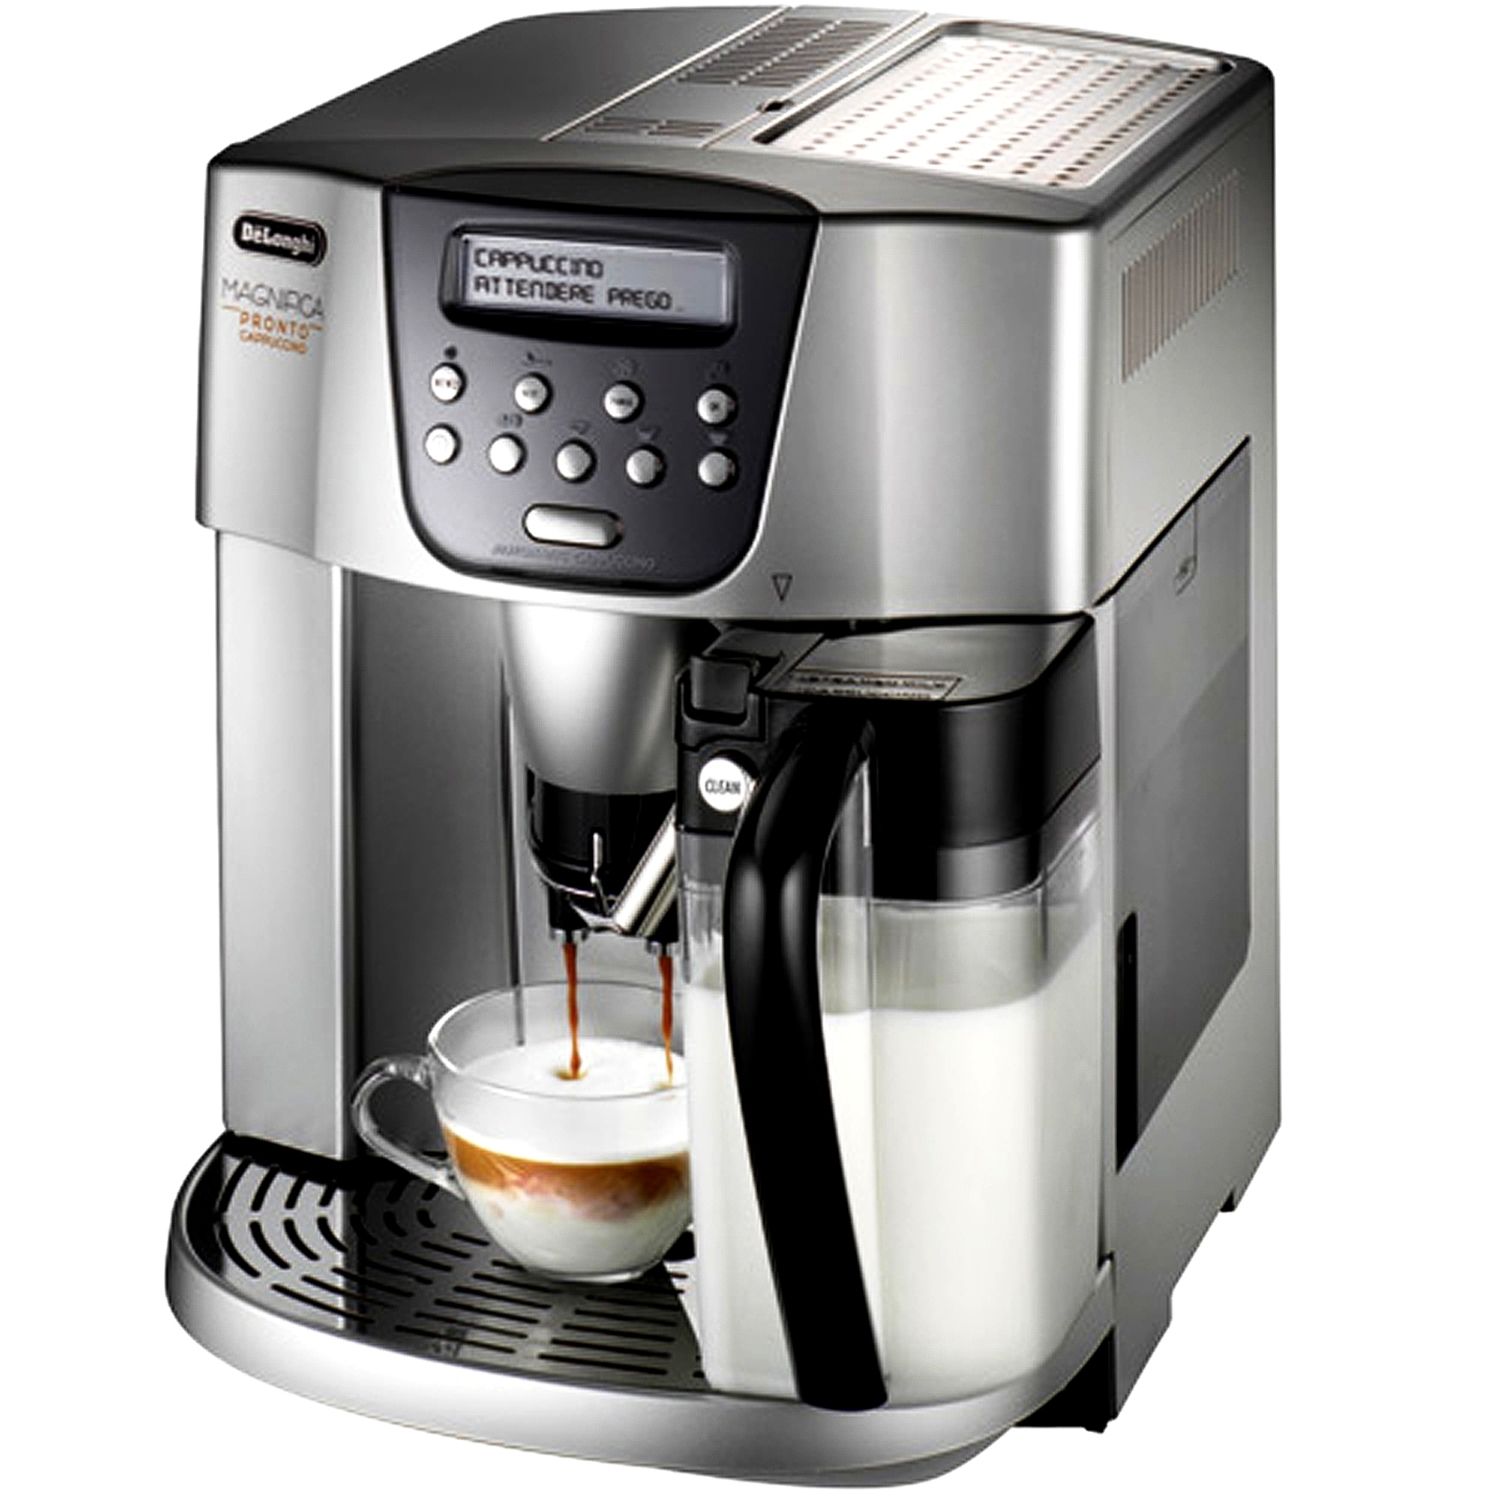 delonghi esam 4500 pronto magnifica coffee maker by de. Black Bedroom Furniture Sets. Home Design Ideas